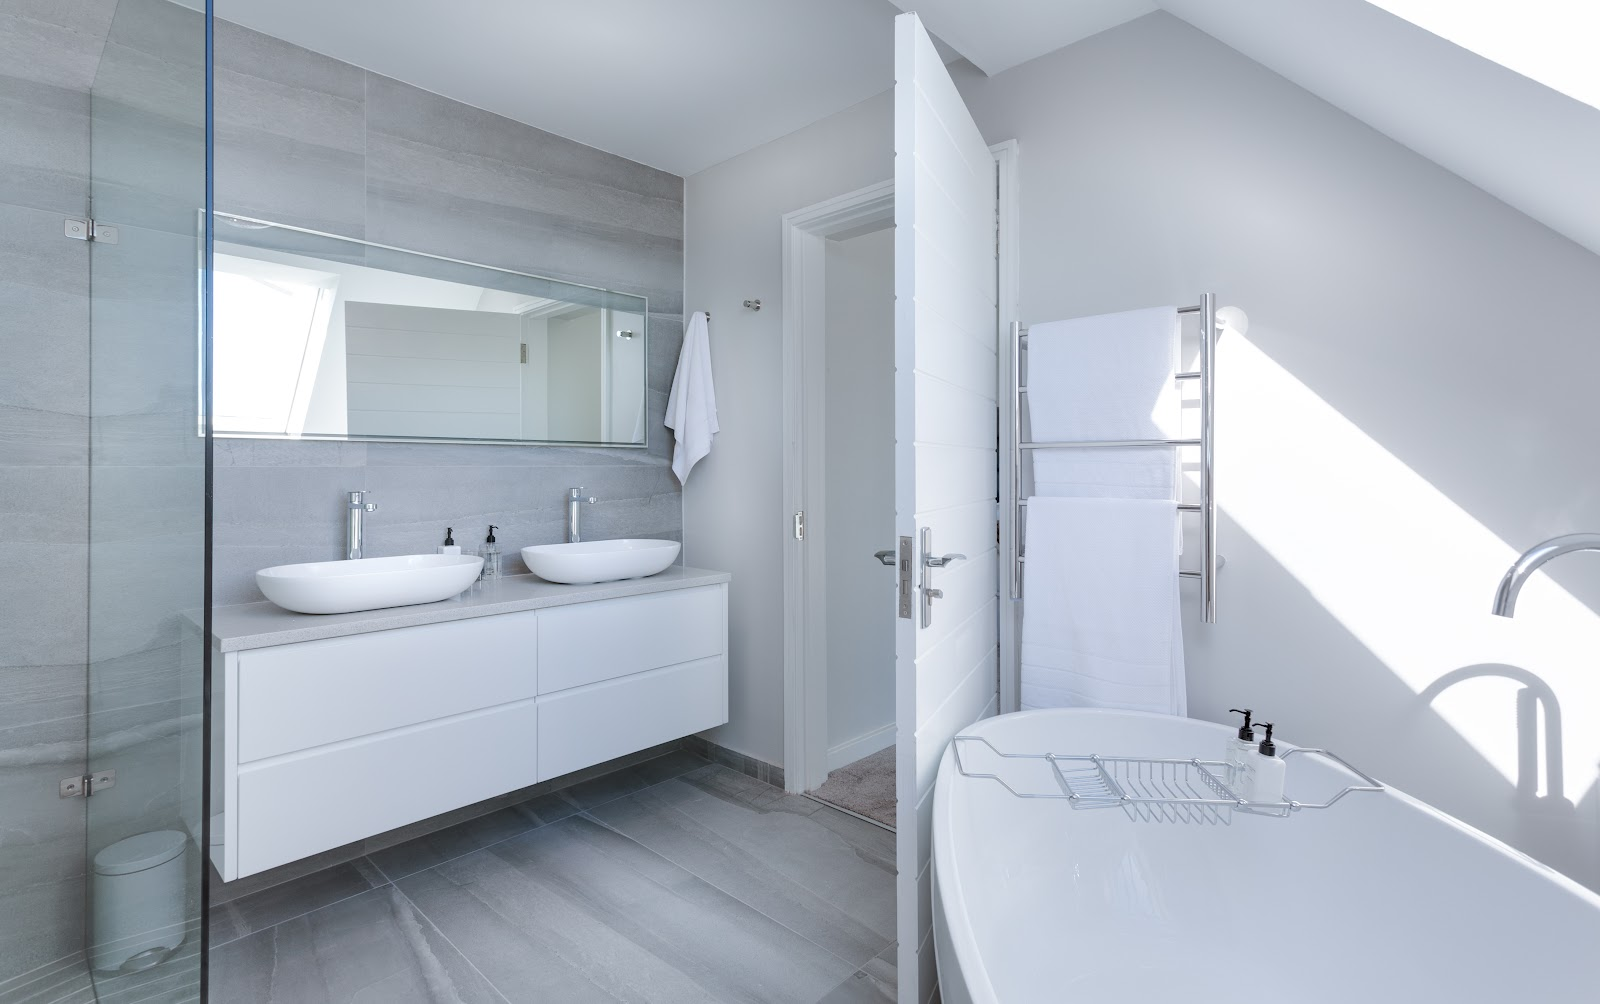 Remodeled bathroom Remodeling Projects That Add Value